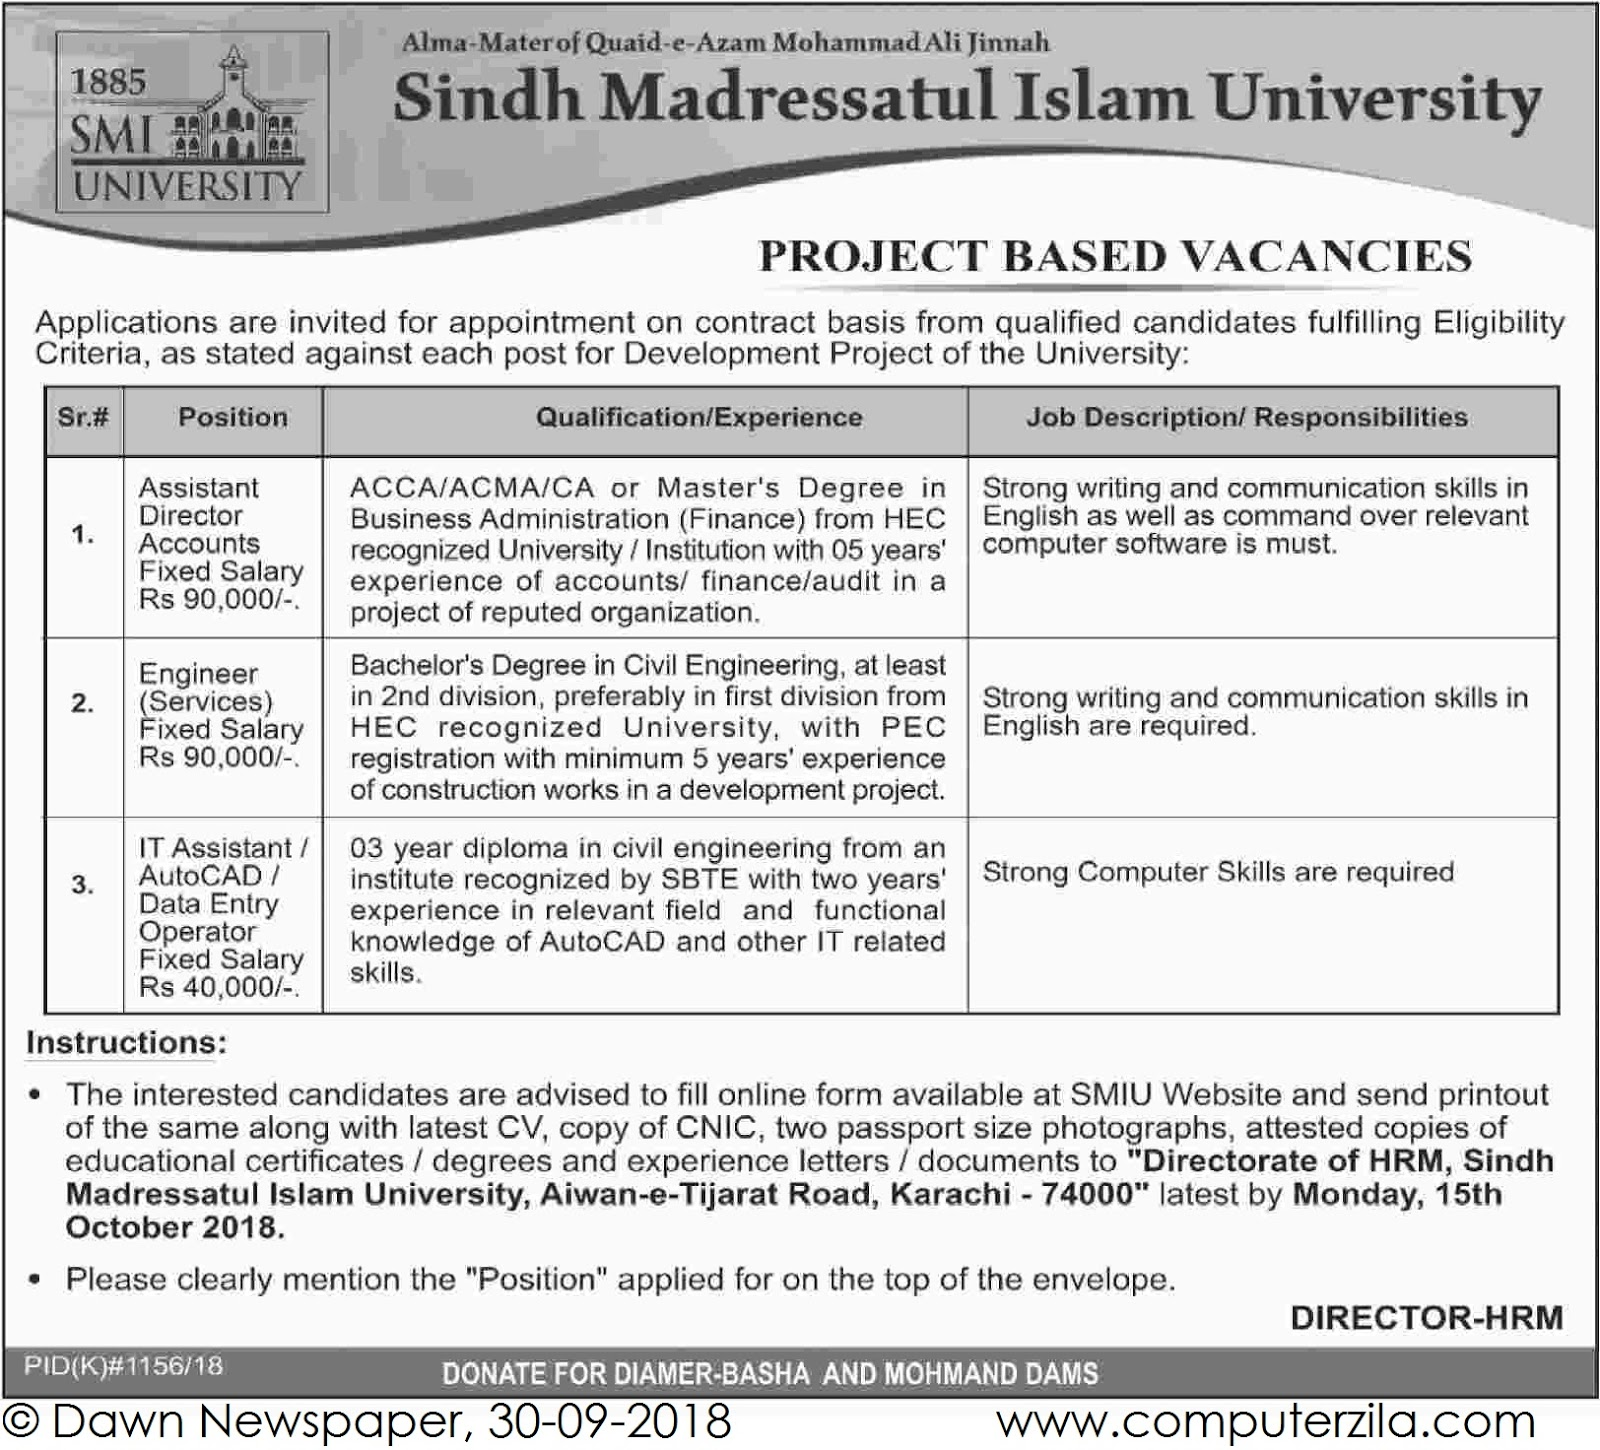 Project Based Vacancies at Sindh Madressatul Islam University